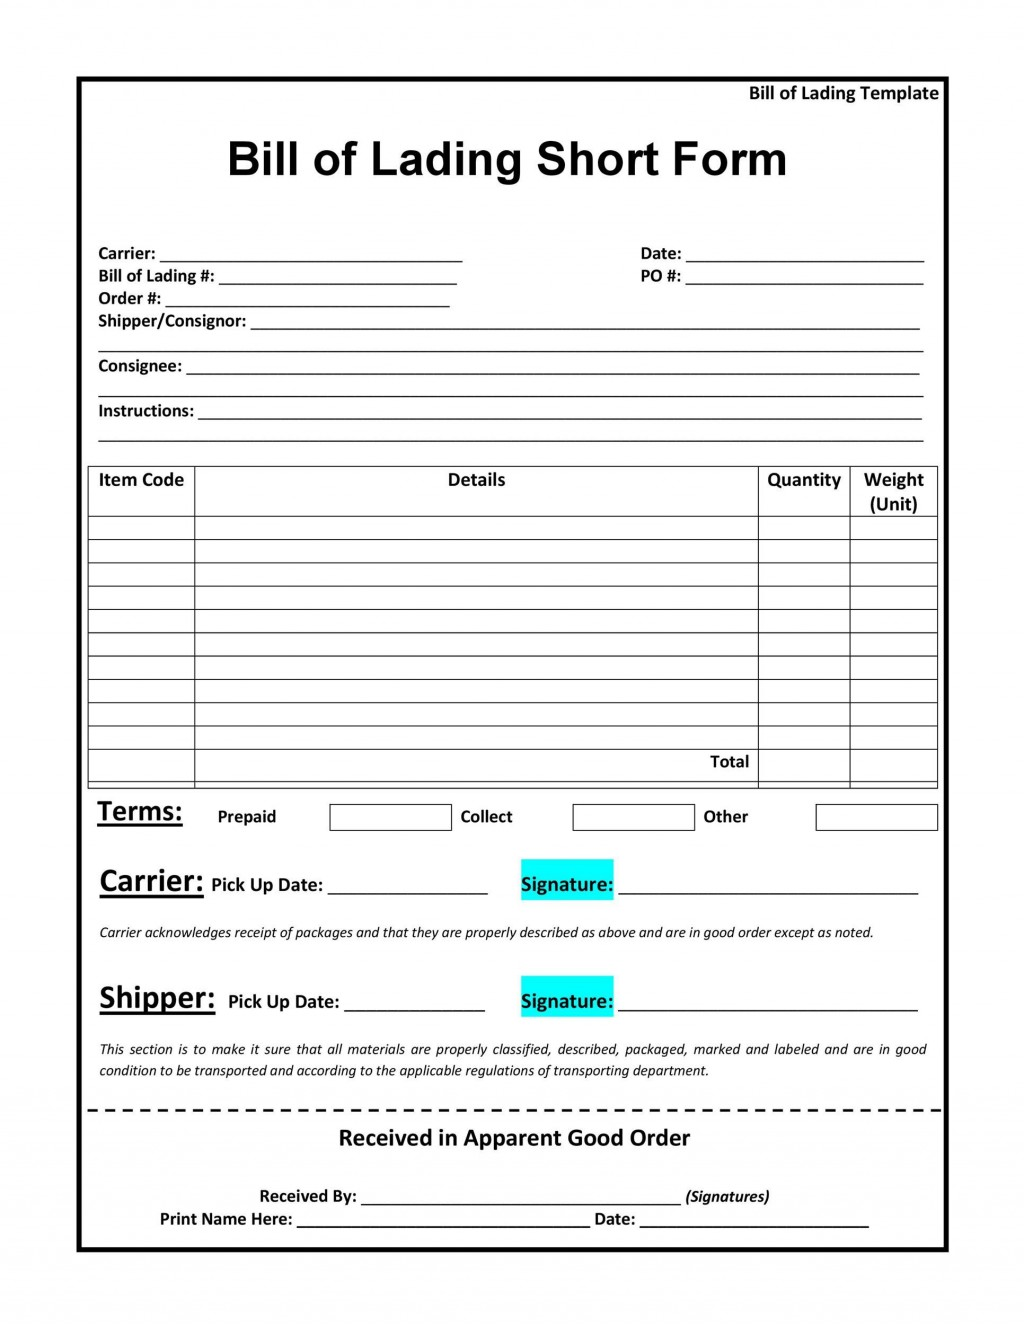 004 Formidable Bill Of Lading Template Excel Idea  Simple House Format InLarge